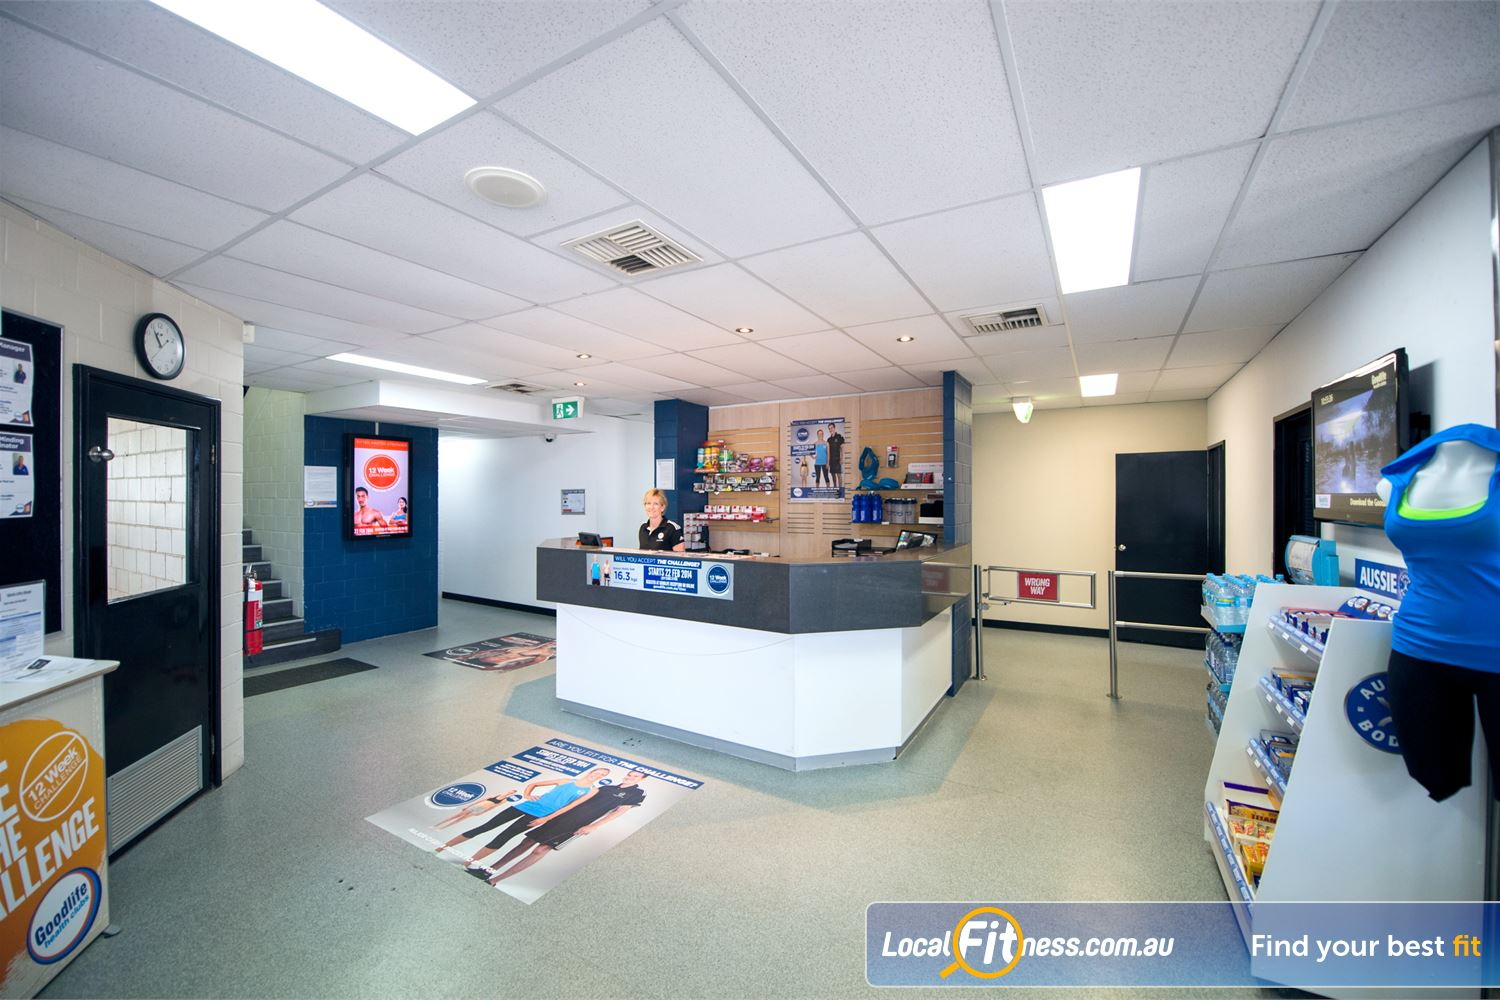 Goodlife Health Clubs Mount Lawley Meet our friendly Goodlife team who will take care of your every need.